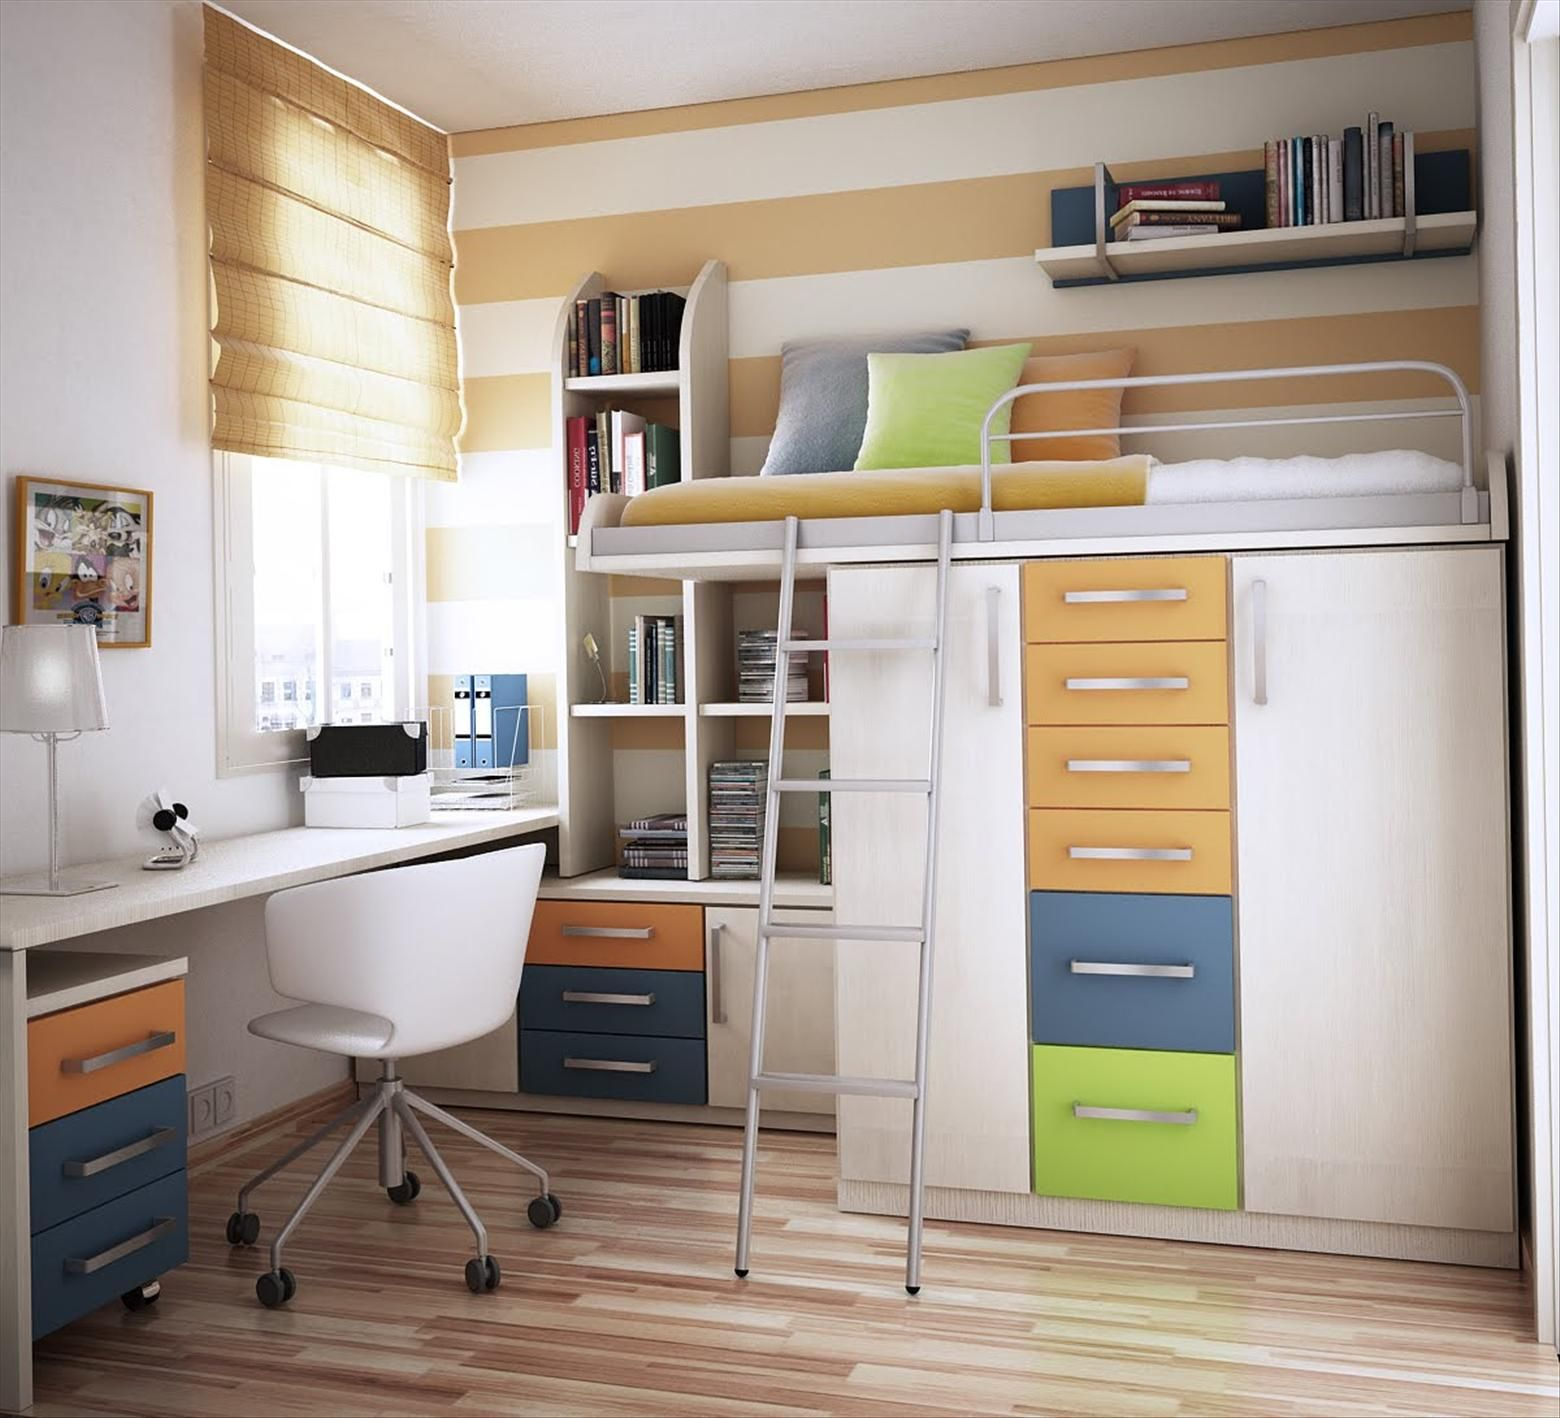 18 Brilliant Bedroom Designs With Creative Storage Ideas : Teenage Bedroom  Design Inspiration With Clever Bedroom